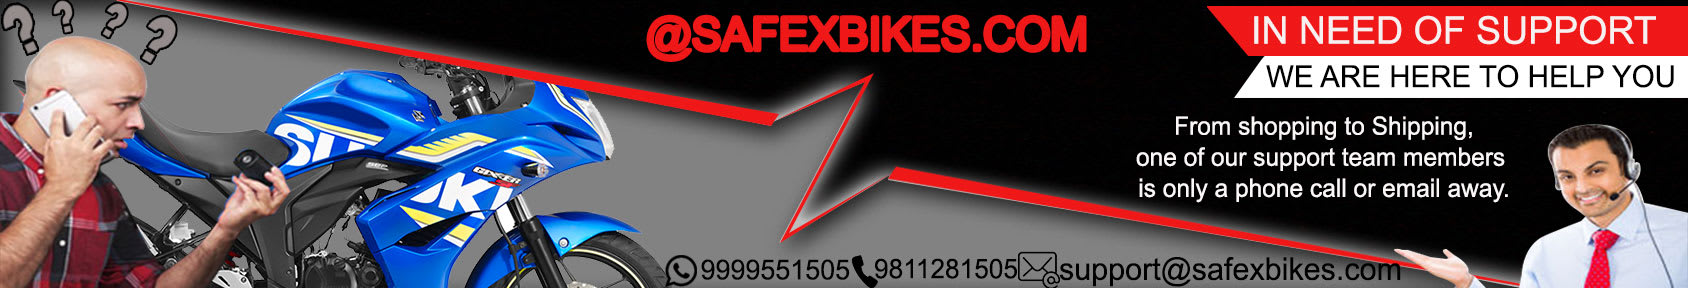 Special offers on Genuine Motorcycle Spare Parts And Accessories - For support you can call us